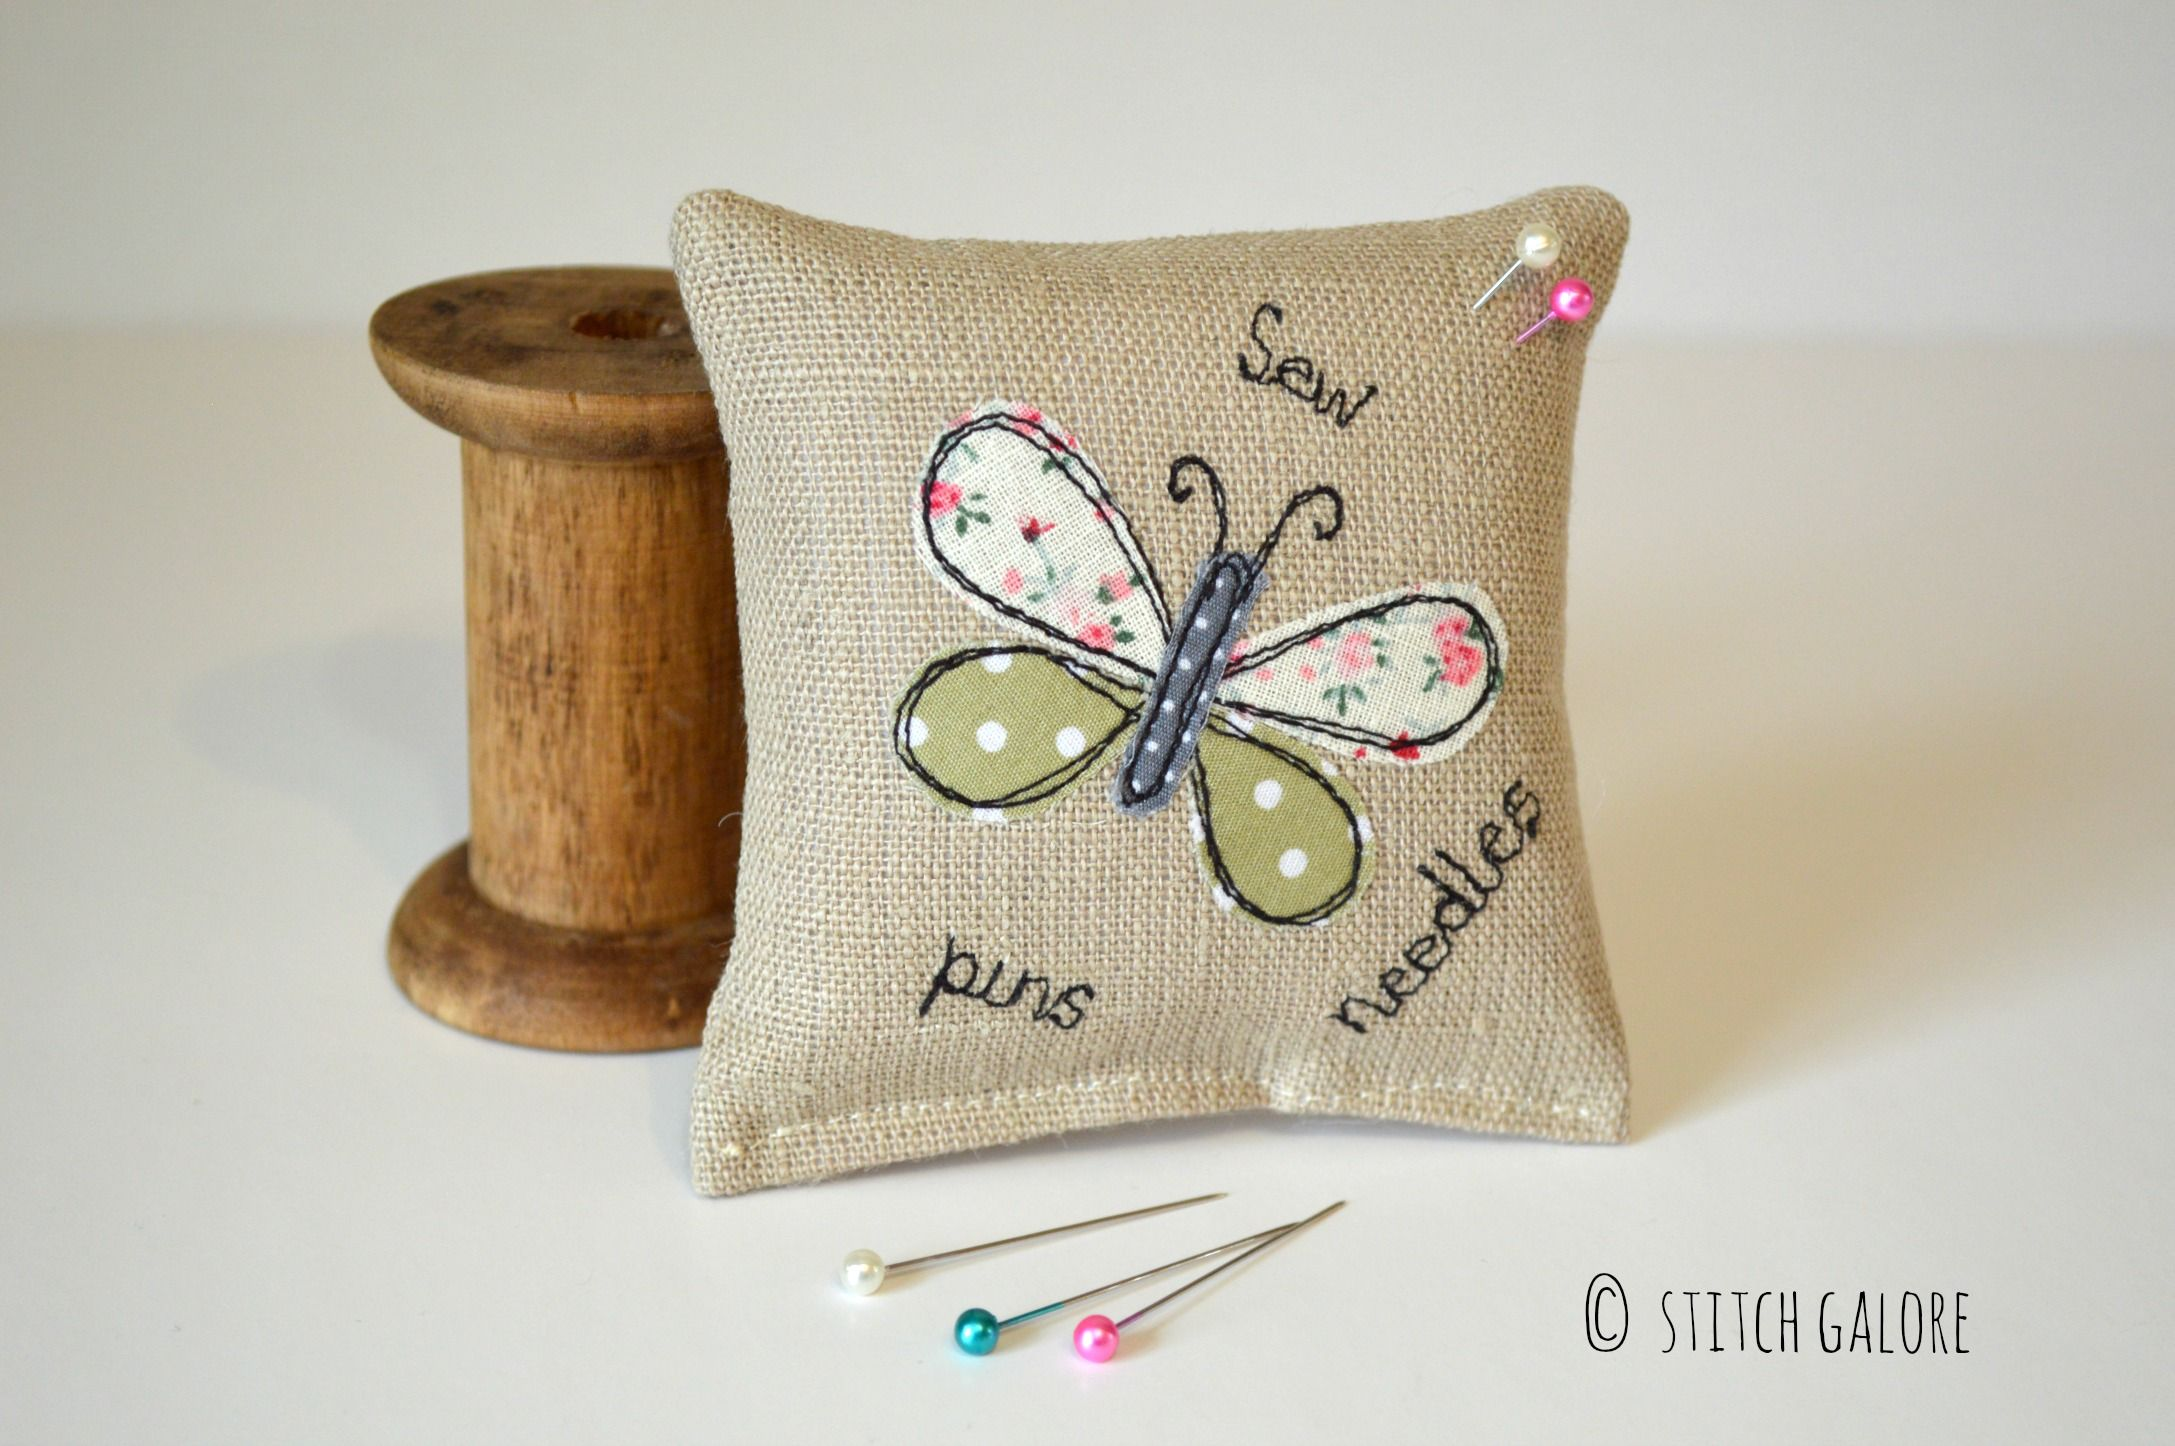 Pincushion made from linen fabric decorated with a green applique butterfly and the words sew, pins and needles handmade by Stitch Galore. www.stitchgalore.com